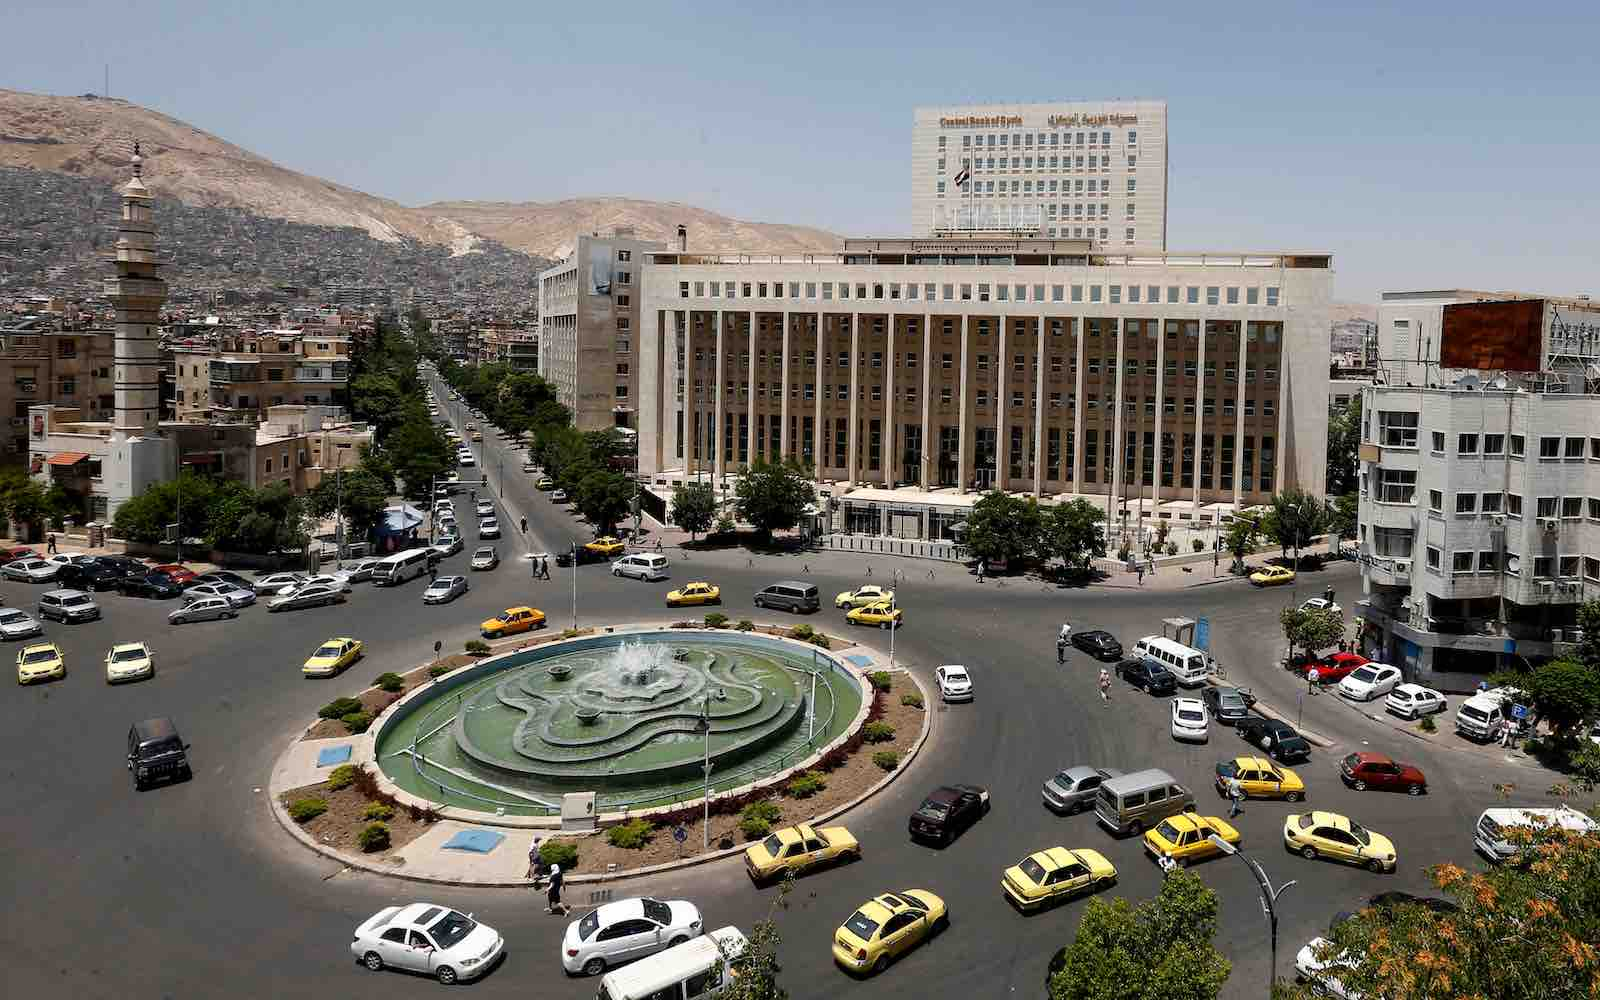 The Central Bank of Syria headquarters in Damascus, 17 June 2020 (Louai Beshara/AFP via Getty Images)